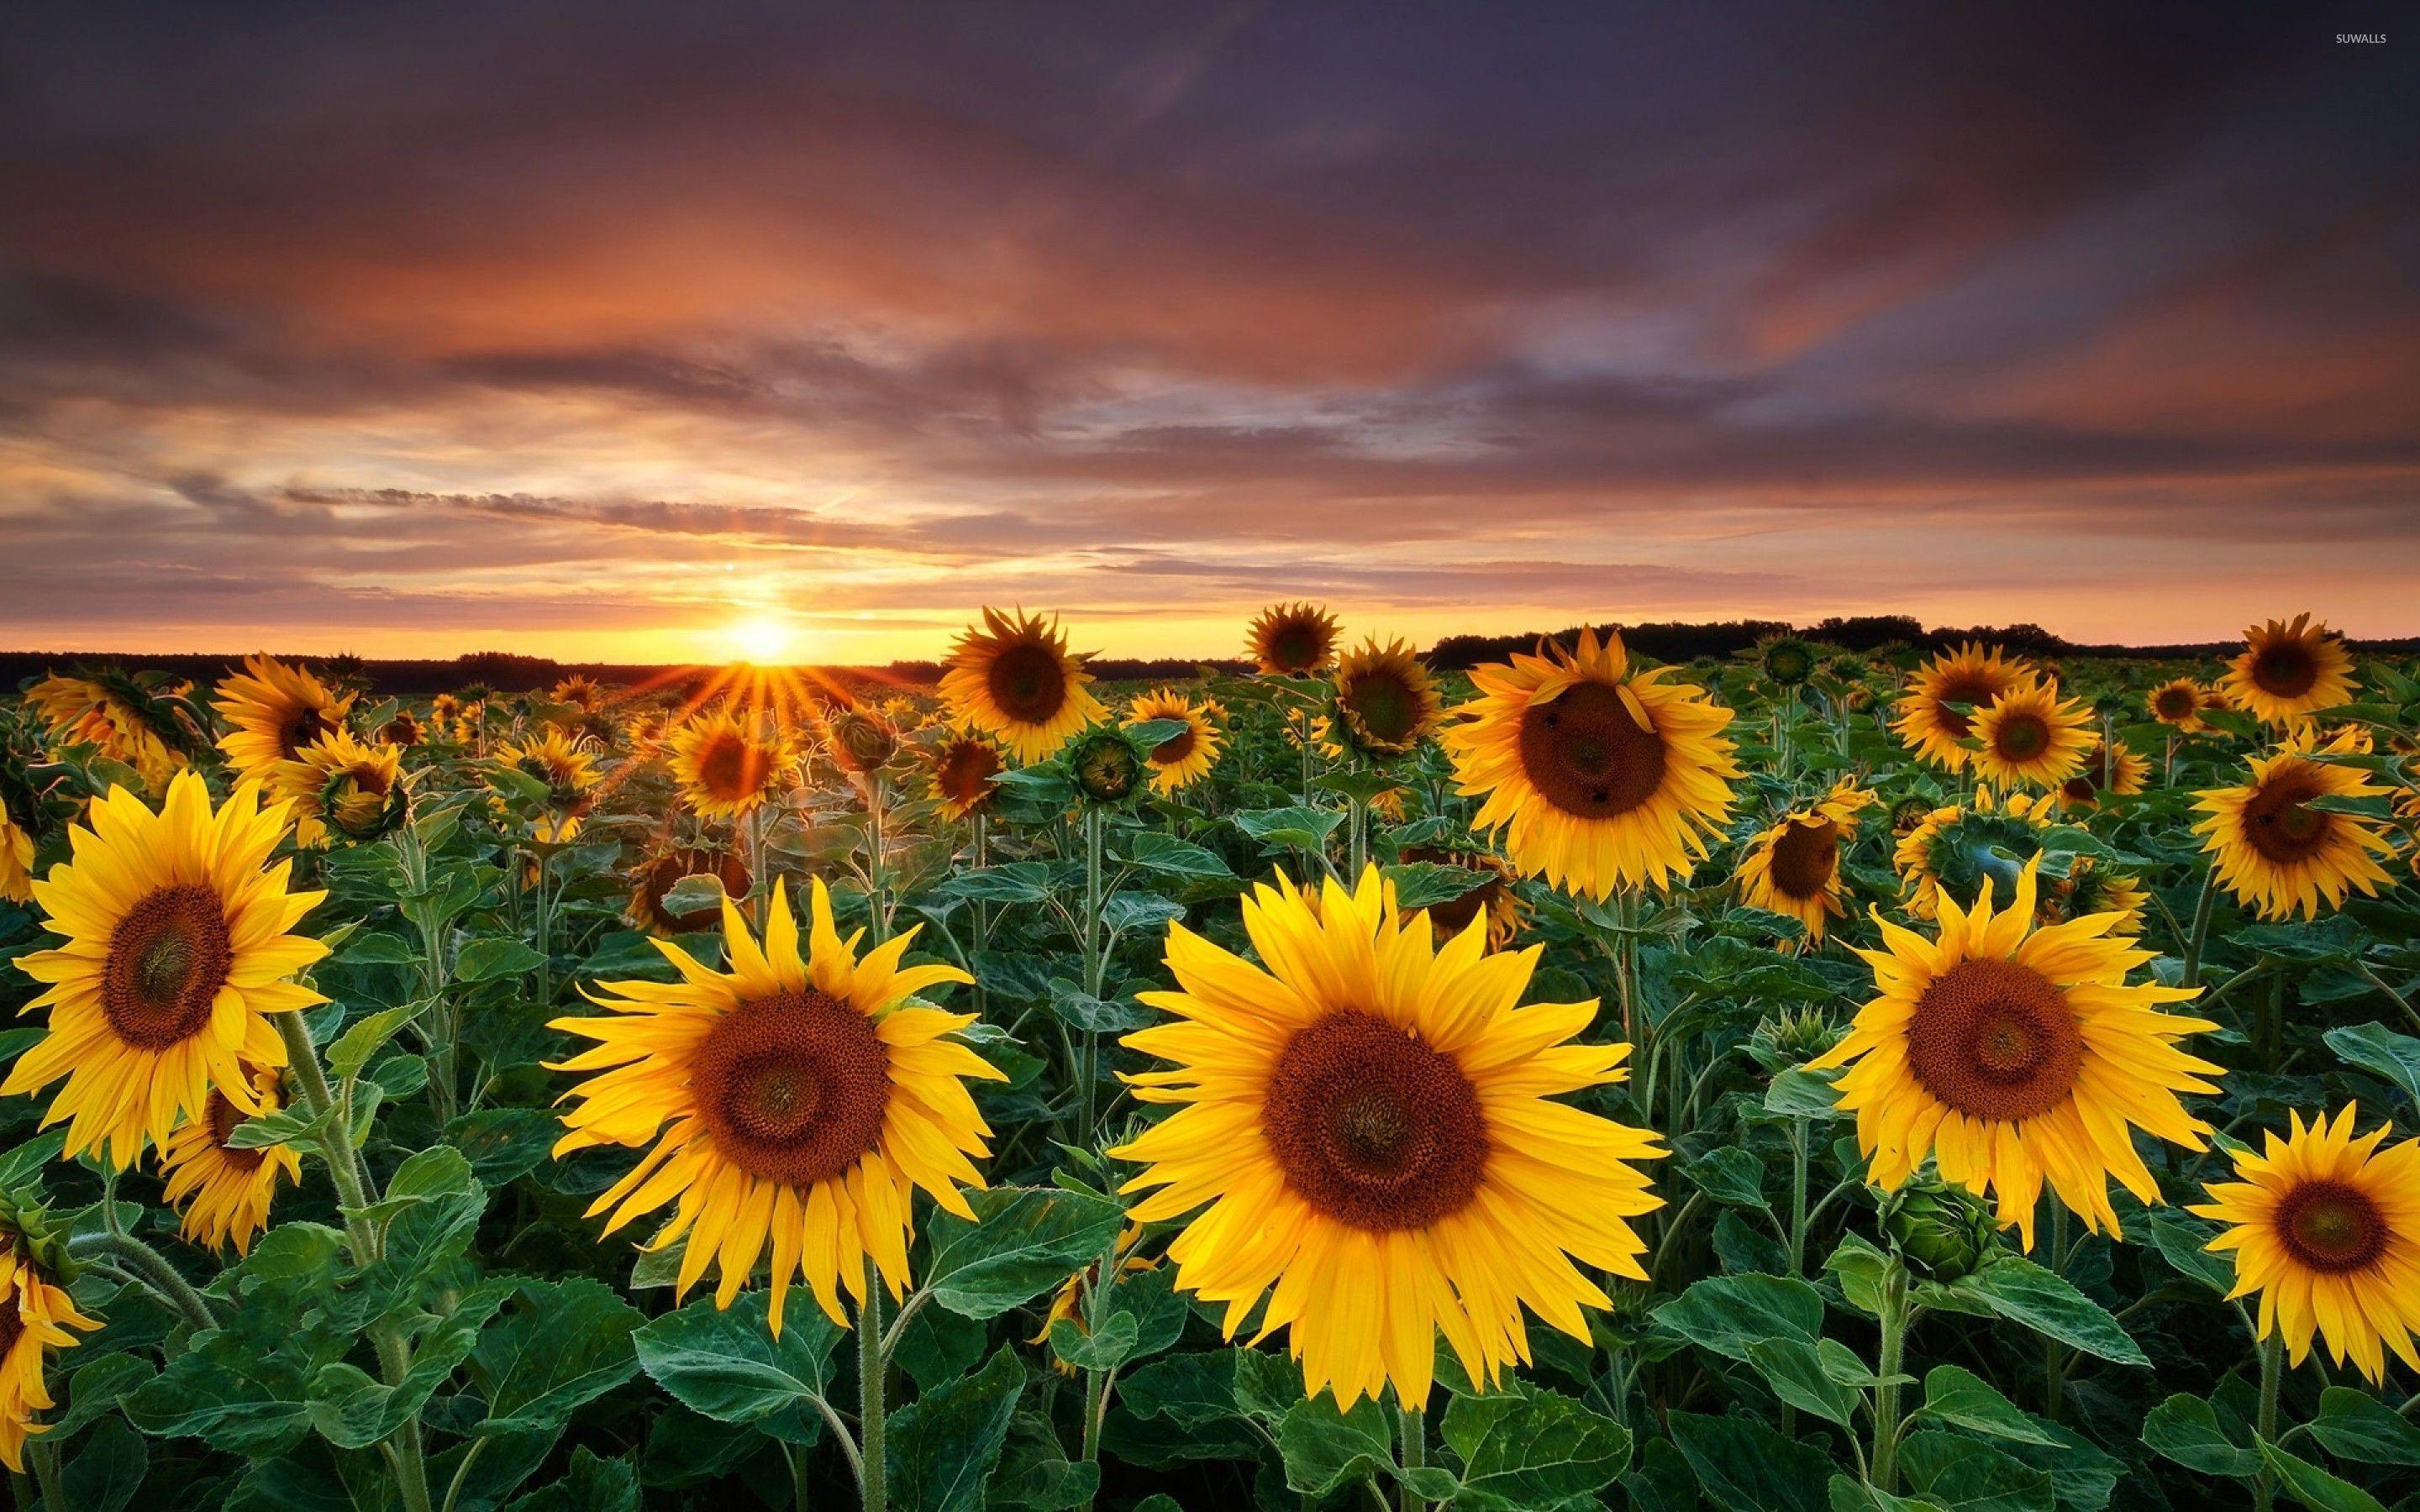 Field Of Sunflowers Wallpapers - Wallpaper Cave